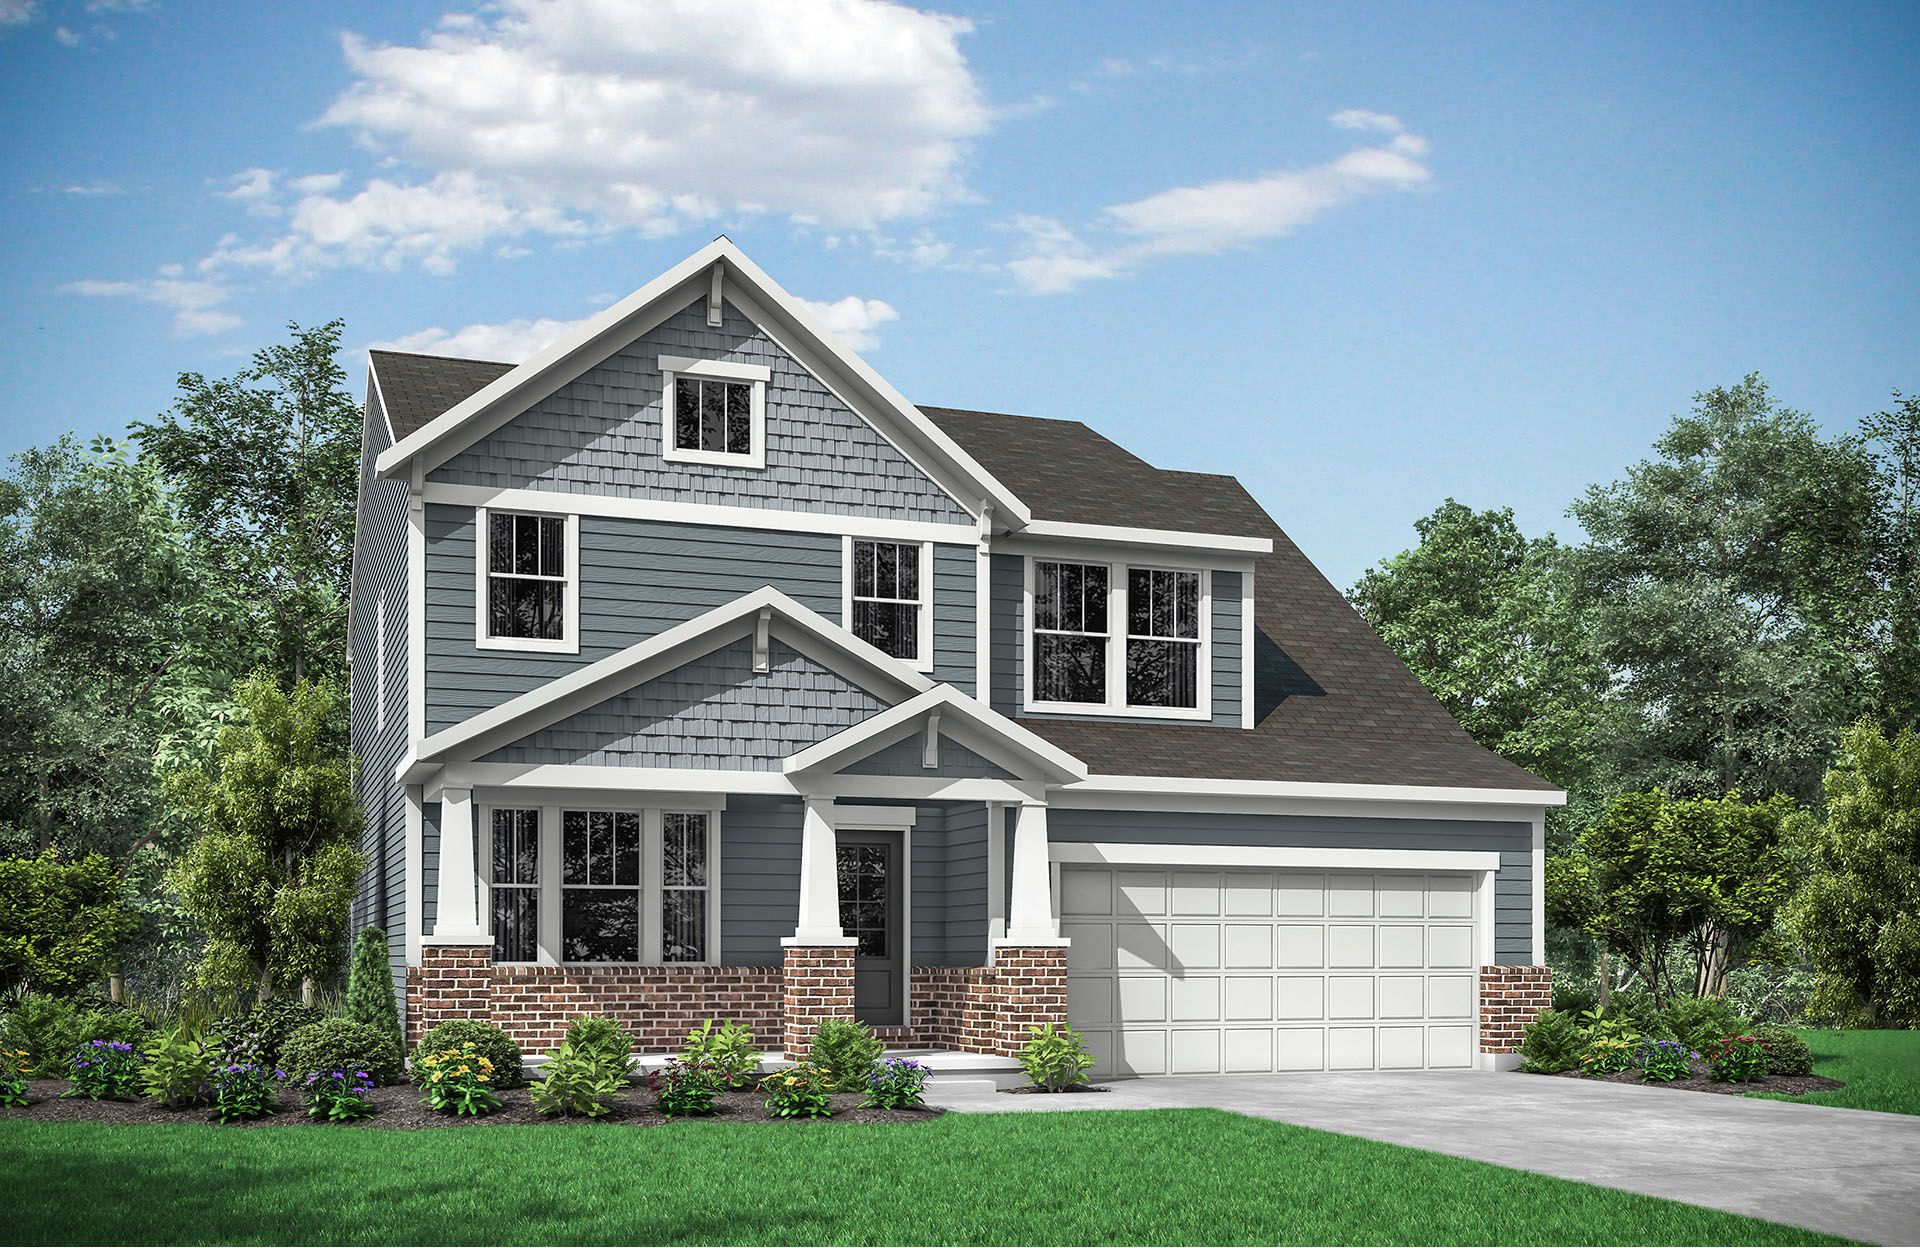 Great More Communities By Drees Homes